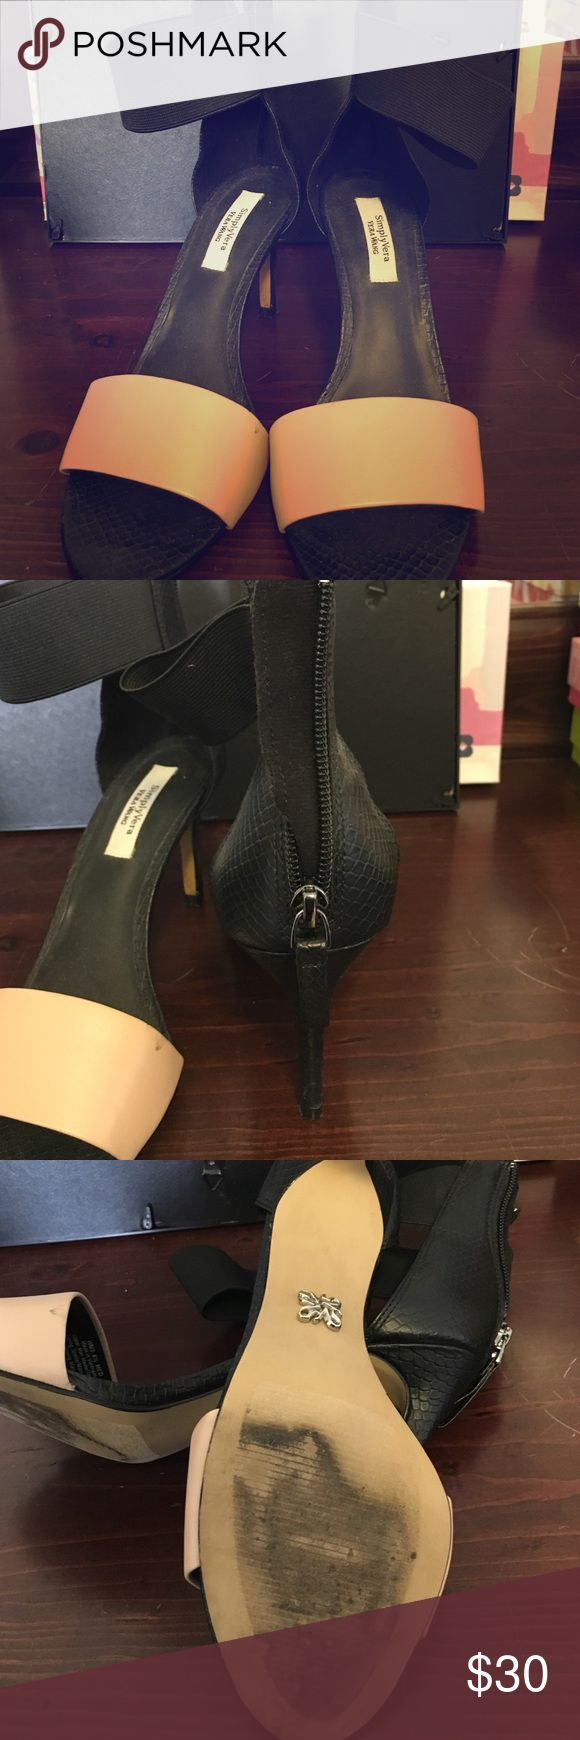 Simply Vera Vera Wang Heels Black snakeskin design with blush toe strap. Zip up heel. Worn a handful of times as you can tell on the sole. Still in good condition. Comes from a smoke free home Simply Vera Vera Wang Shoes Heels